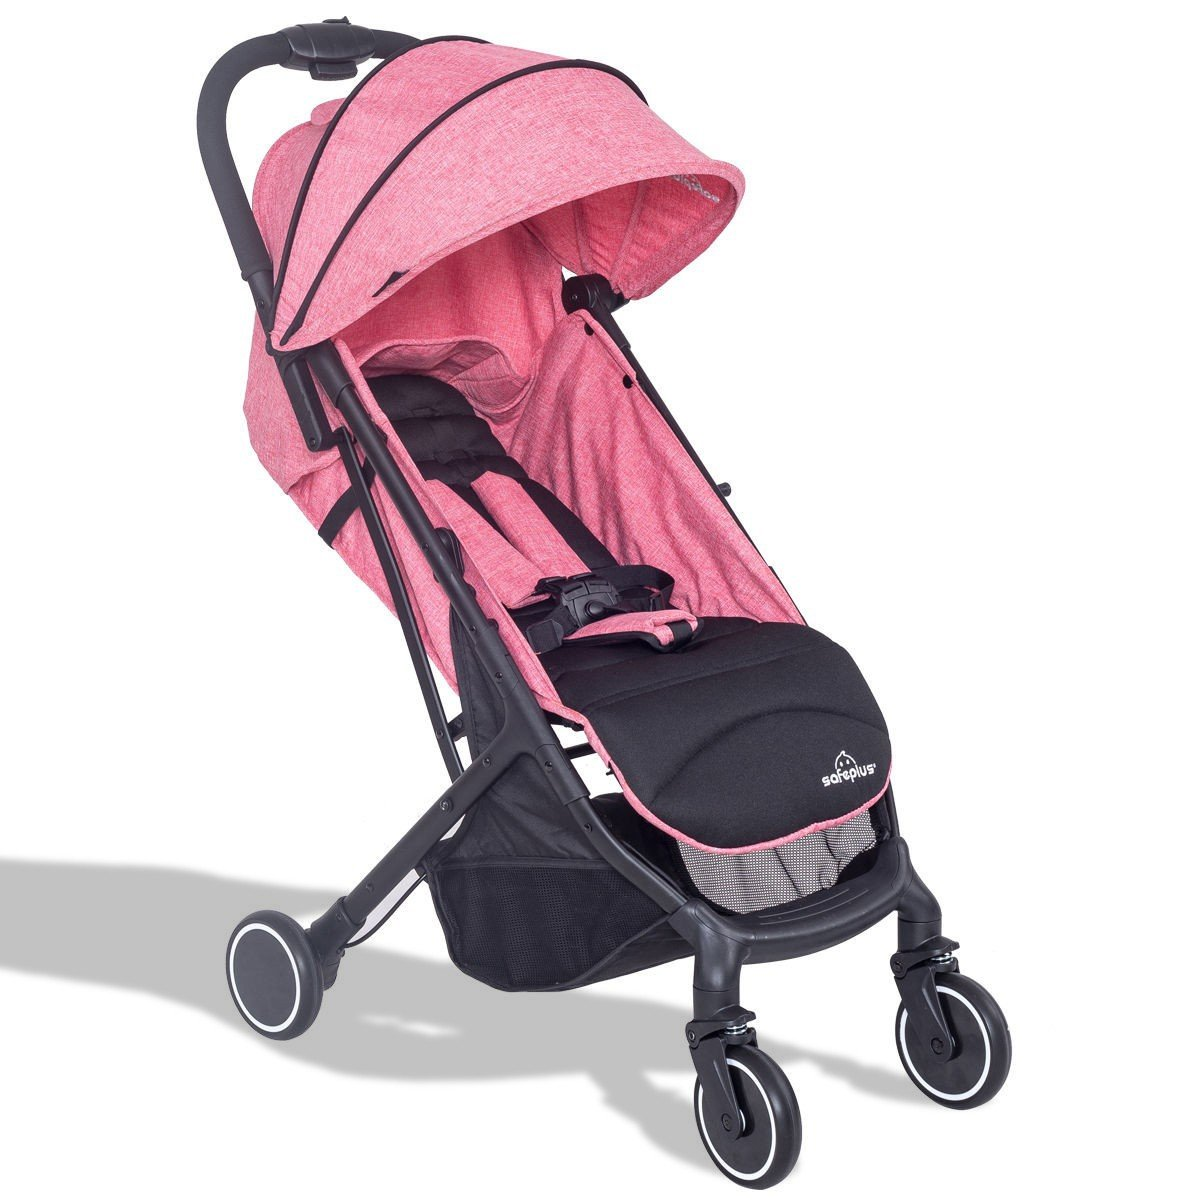 MD Group Baby Stroller Travel Foldable Lightweight Steel Frame & 300D Fabric Pink Color